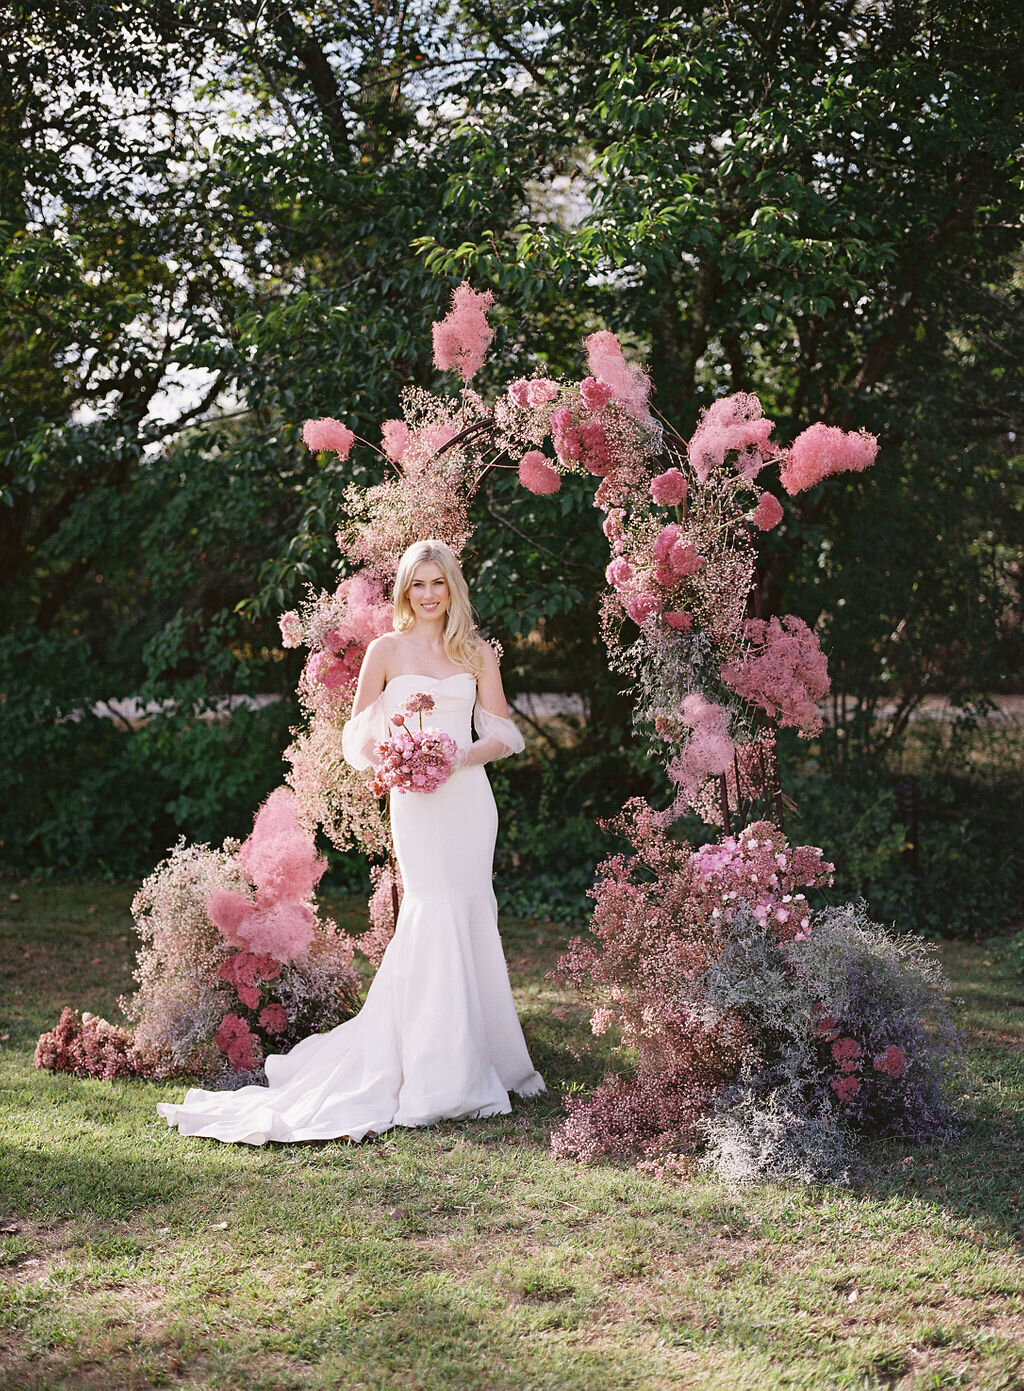 a gorgeous wedding arch done with delicate gypsophila and smoke bush in shades of pink just wows